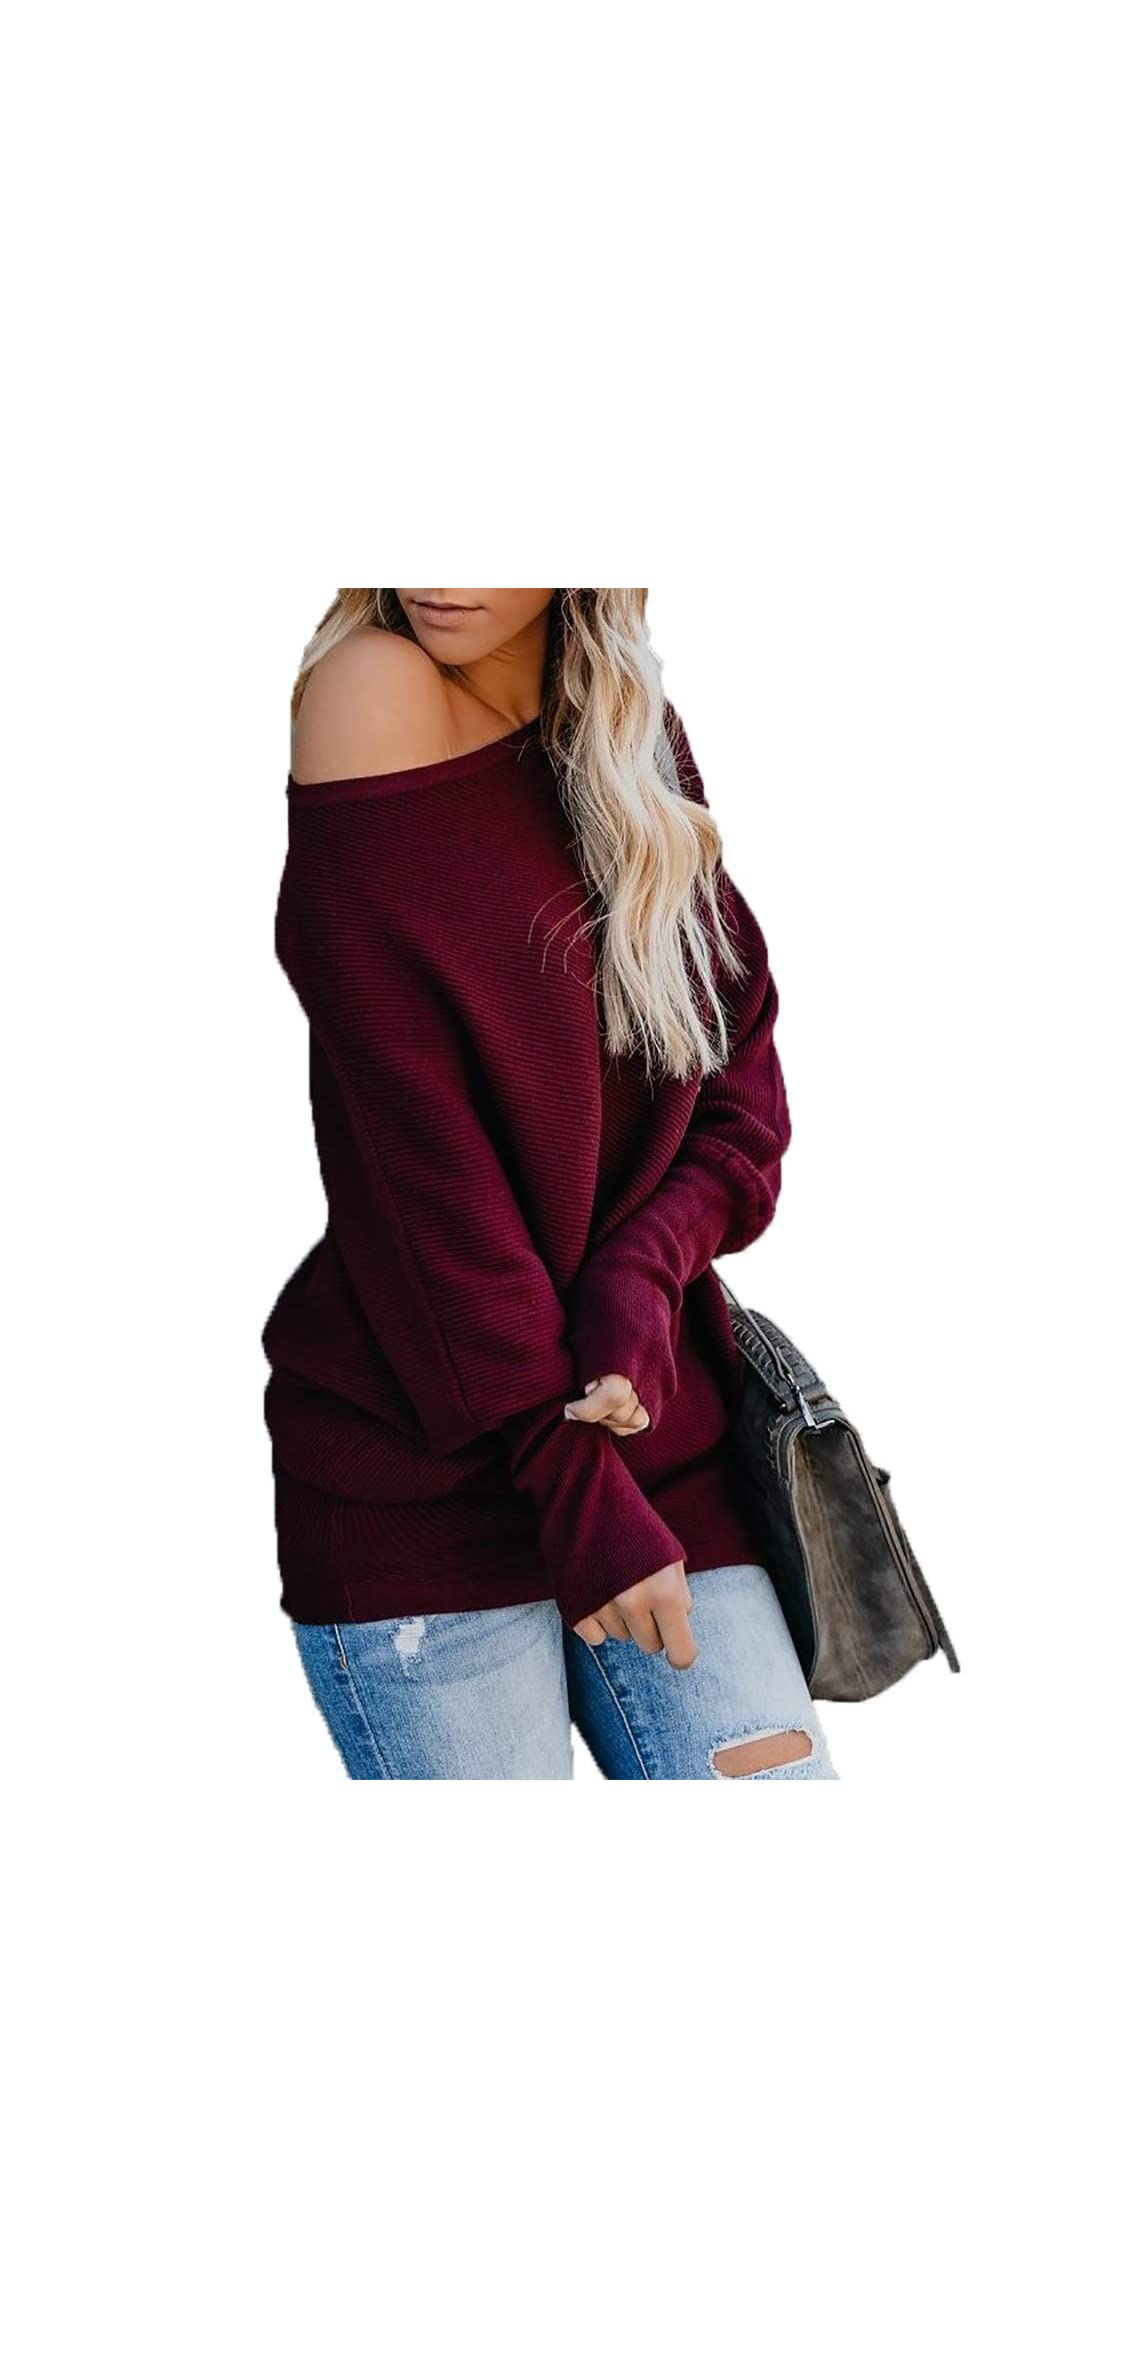 Women's Casual Bat Wing Sleeve Knitted One Shoulder